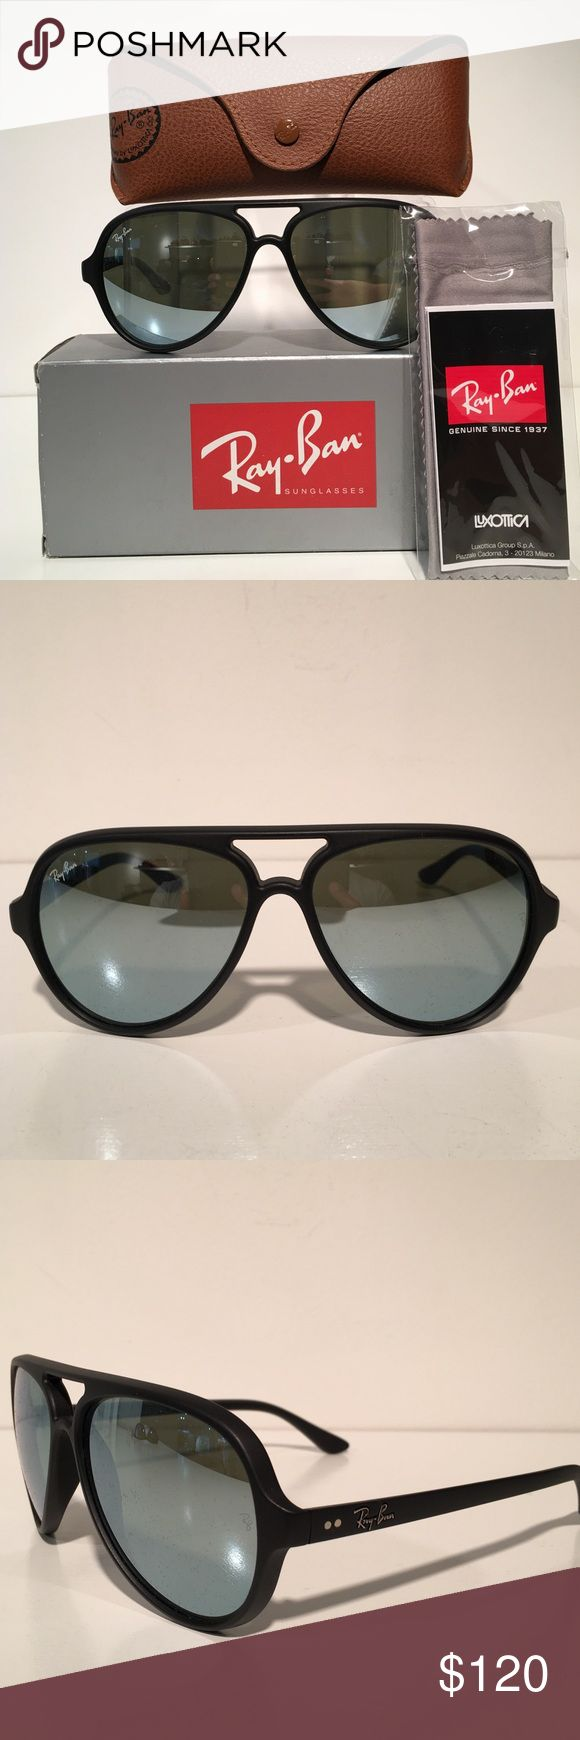 Ray-Ban Black Aviator Sunglasses Brand New In Case With Cloth. Made In Italy Ray-Ban Accessories Sunglasses